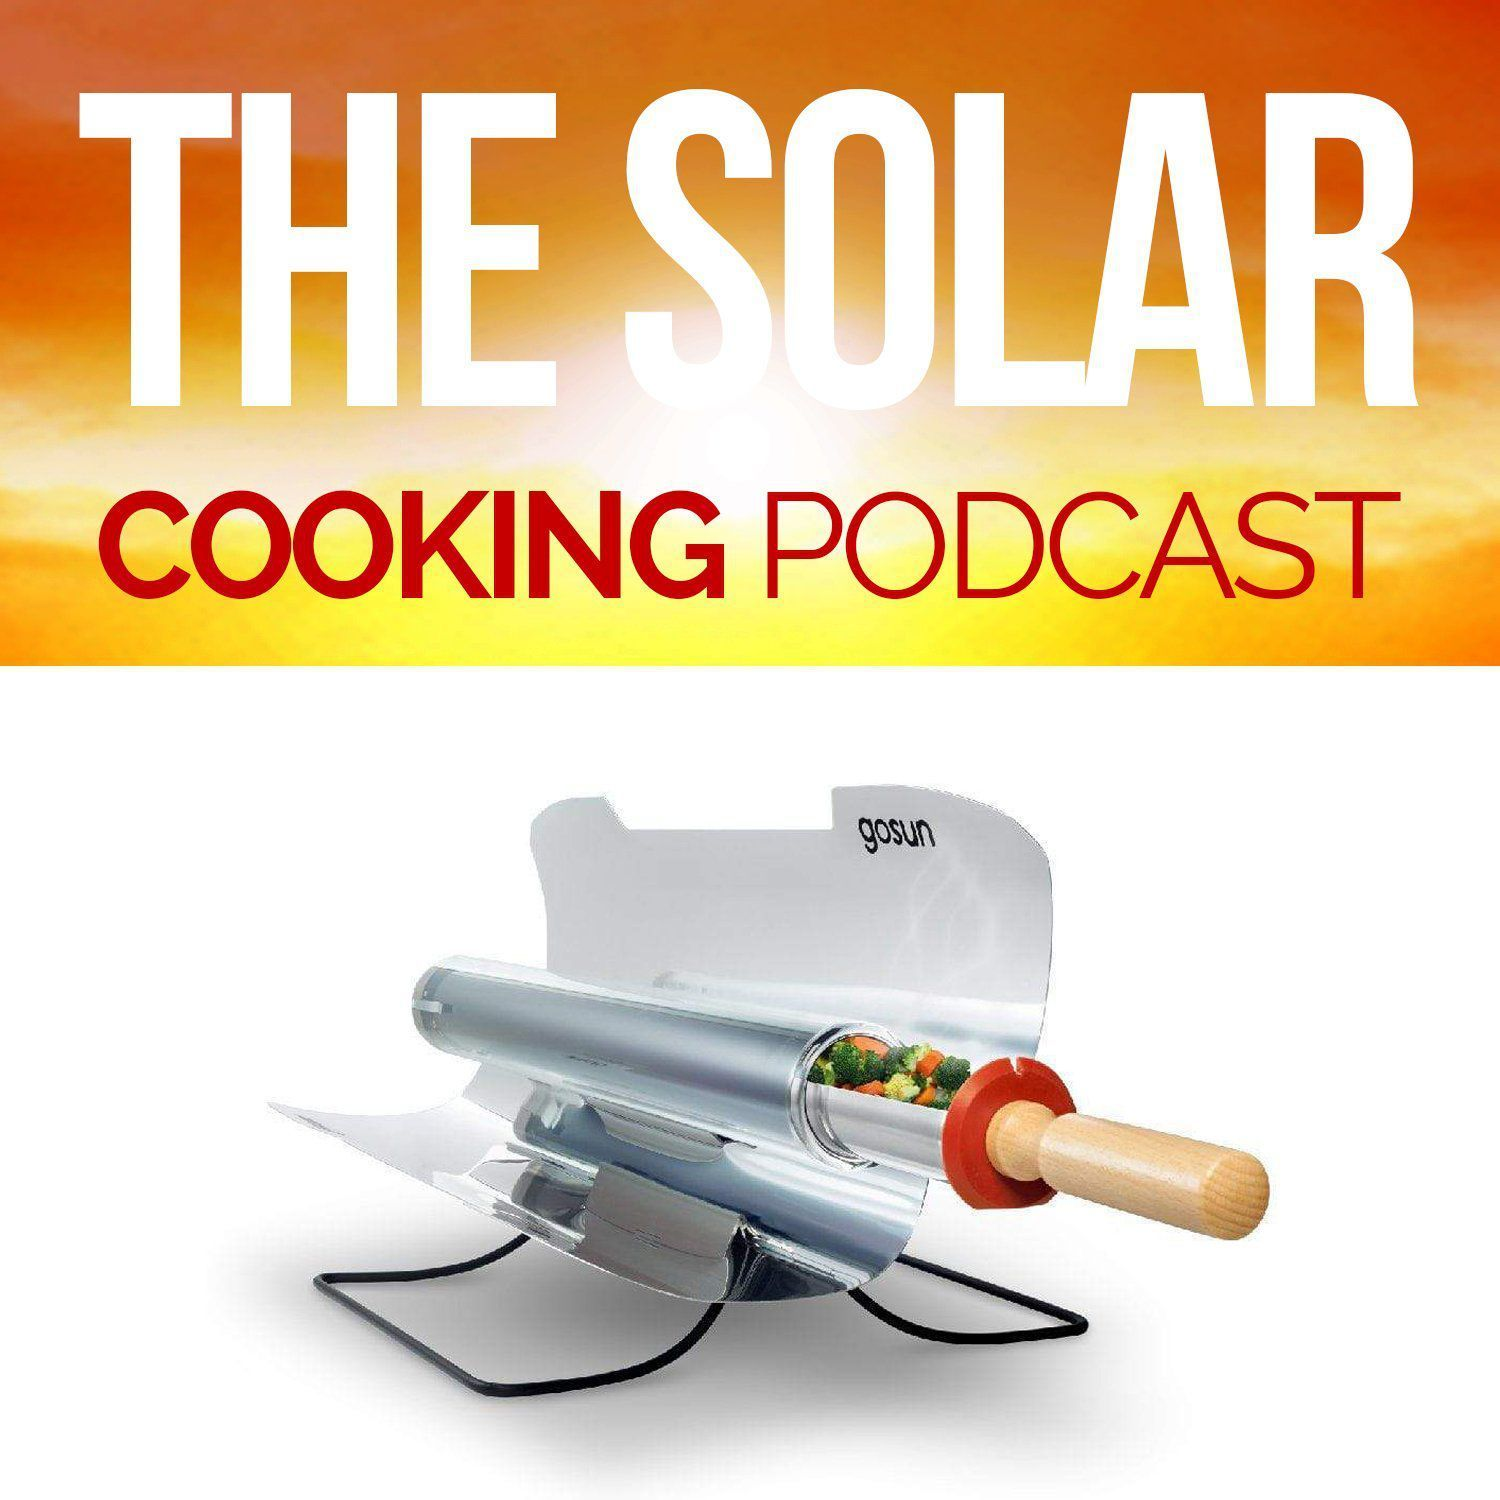 S1 Ep4: Common Mistakes with Solar Cooking and How to Avoid Them